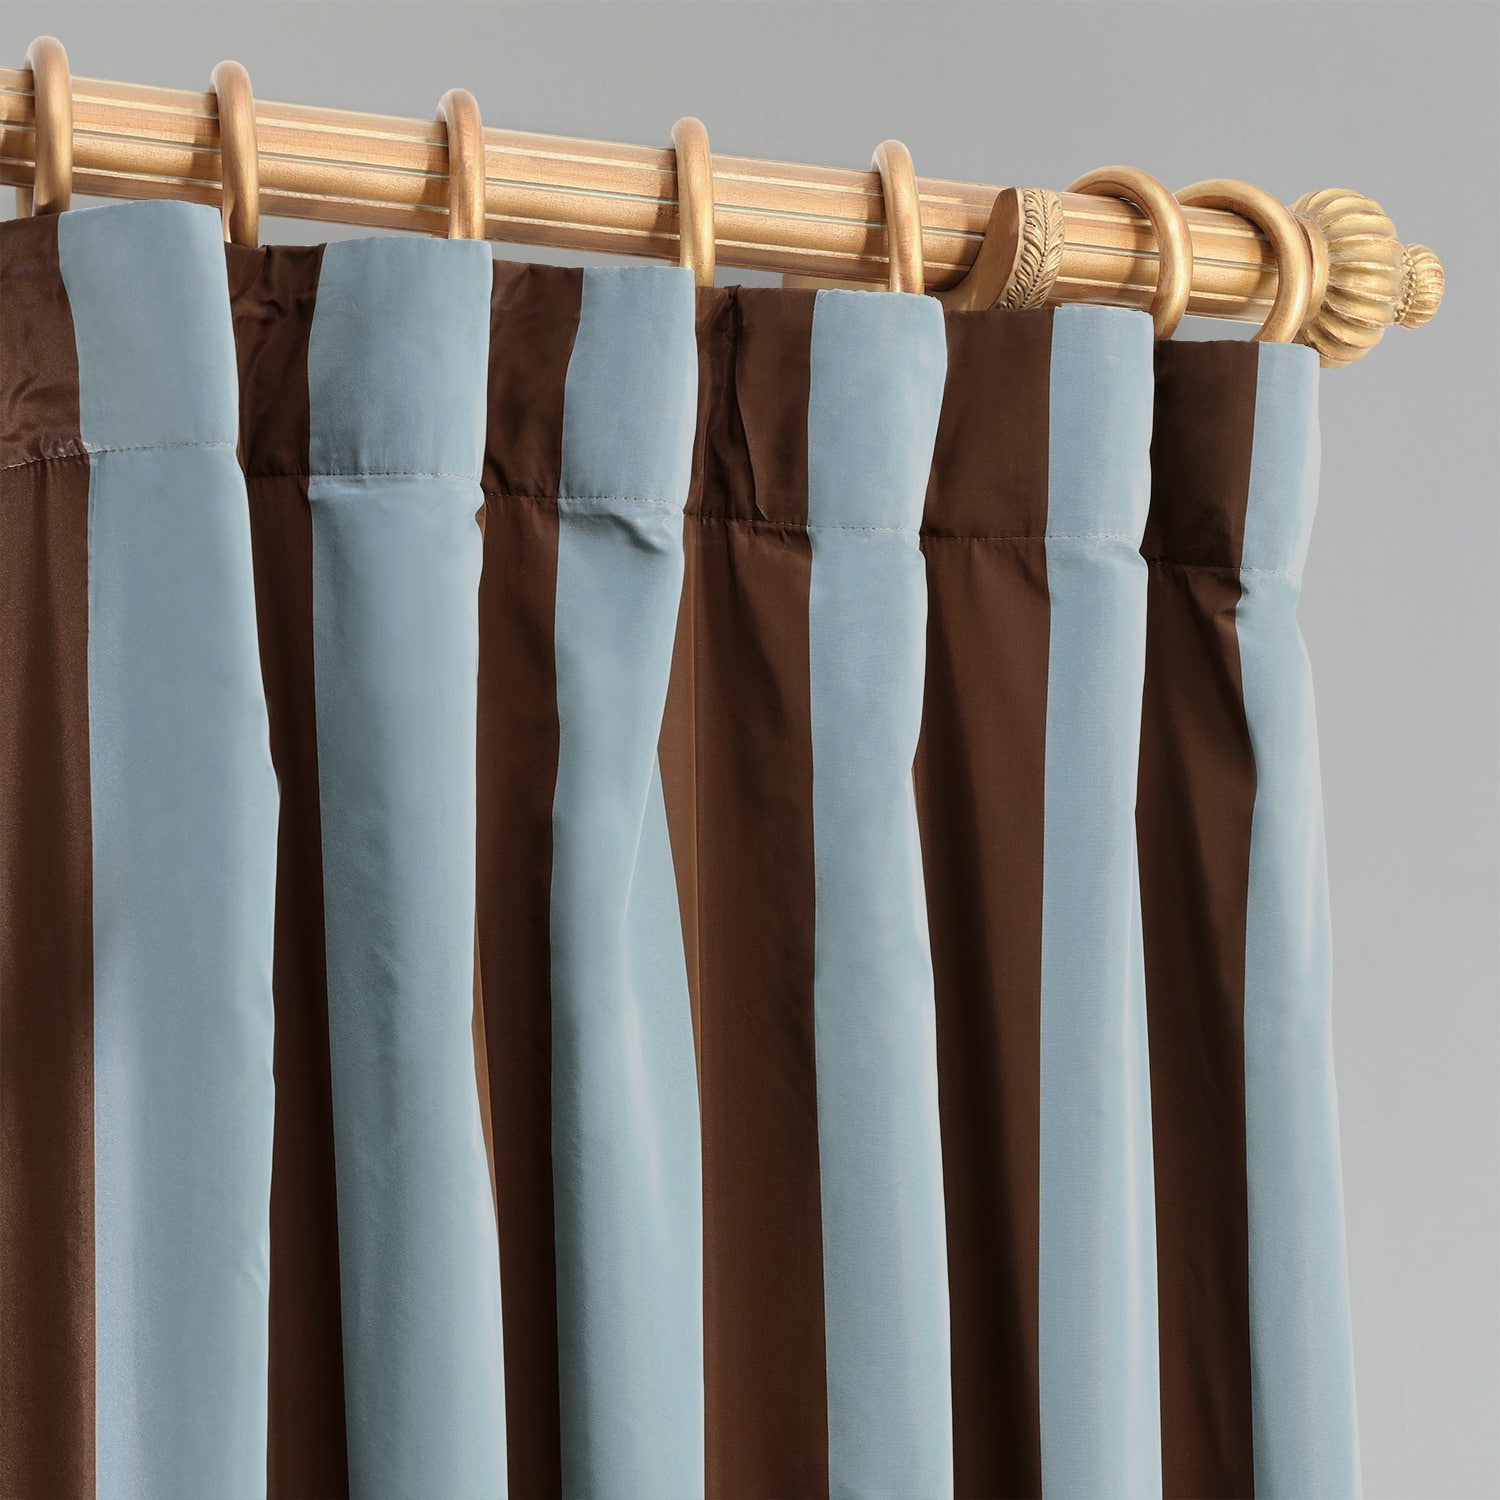 Crockett Blue & Brown Designer Striped Faux Silk Curtain